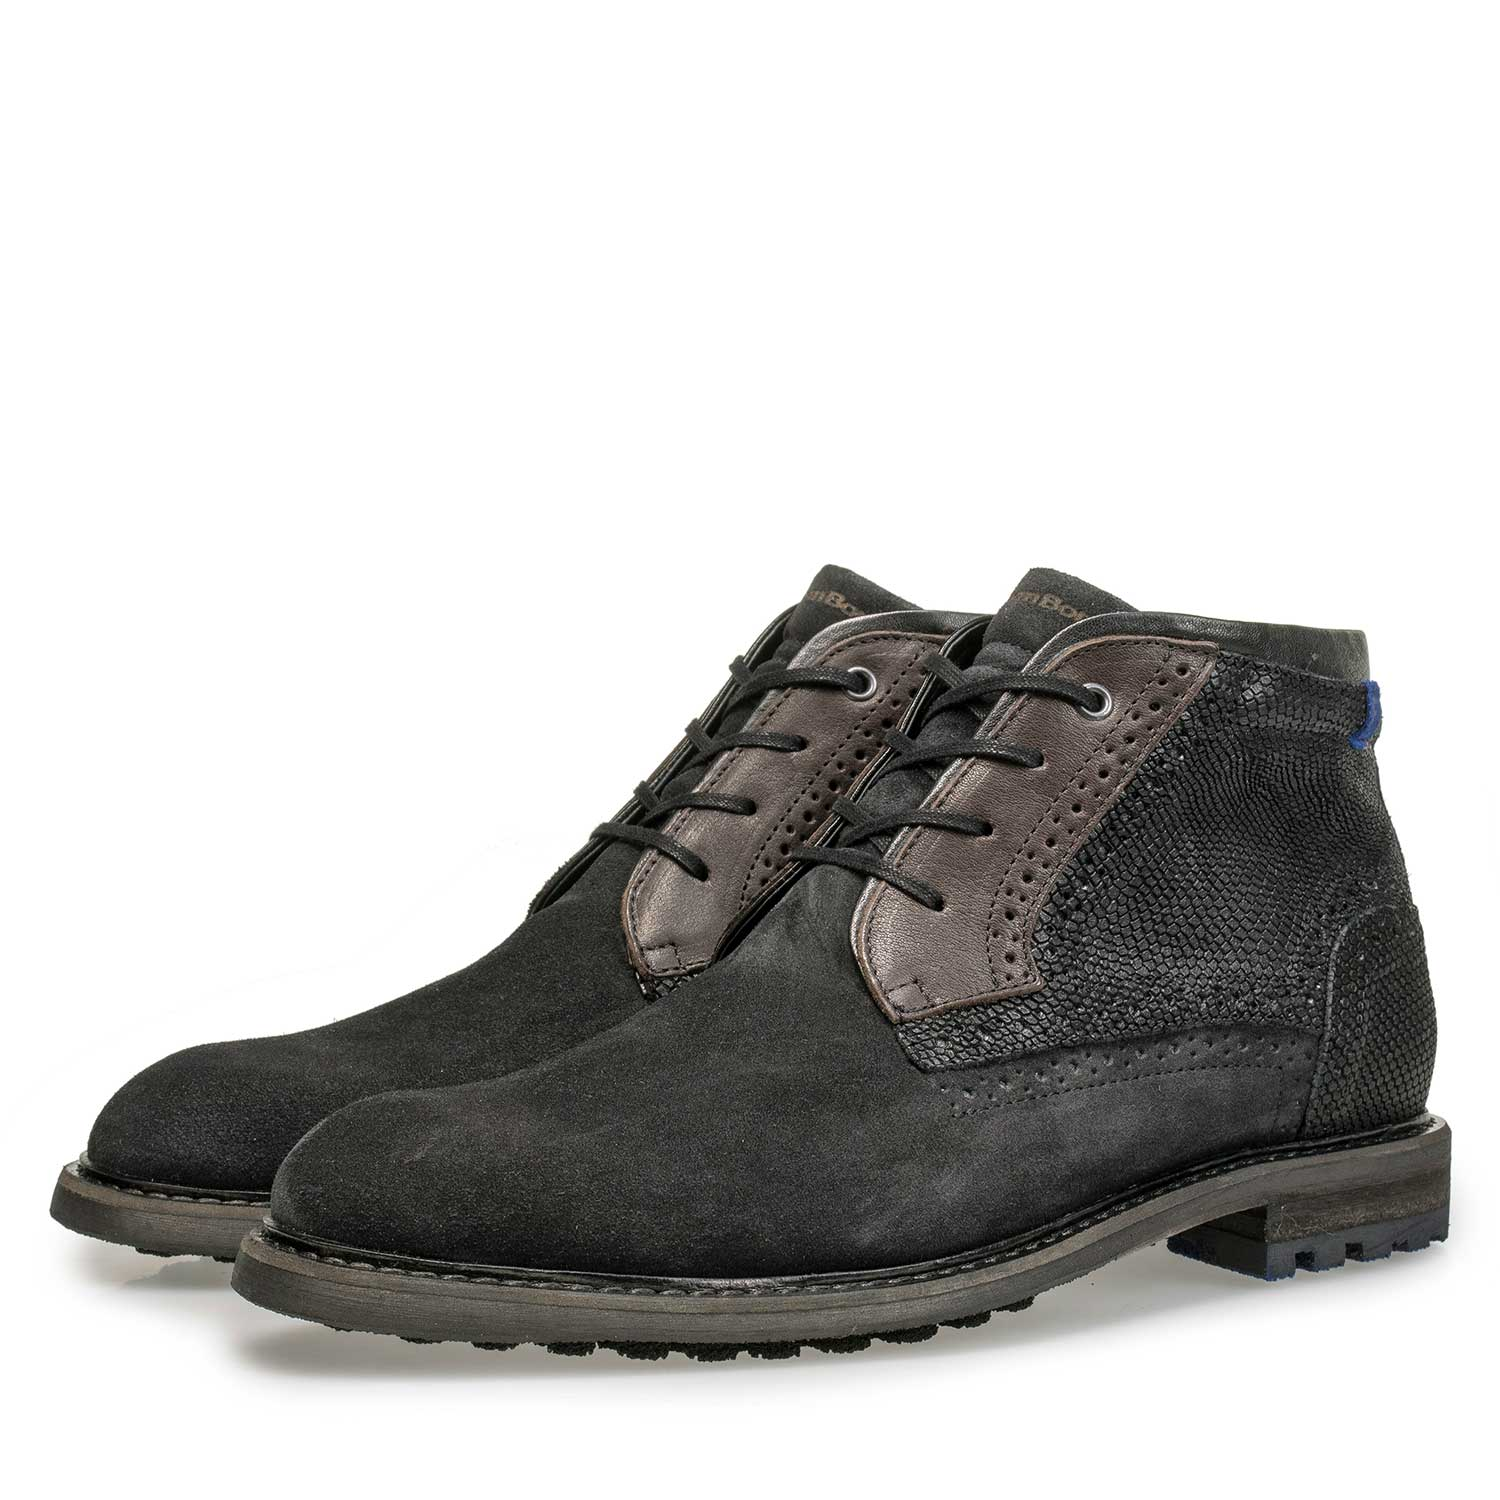 10978/15 - Mid-high dark grey calf's suede leather lace shoe